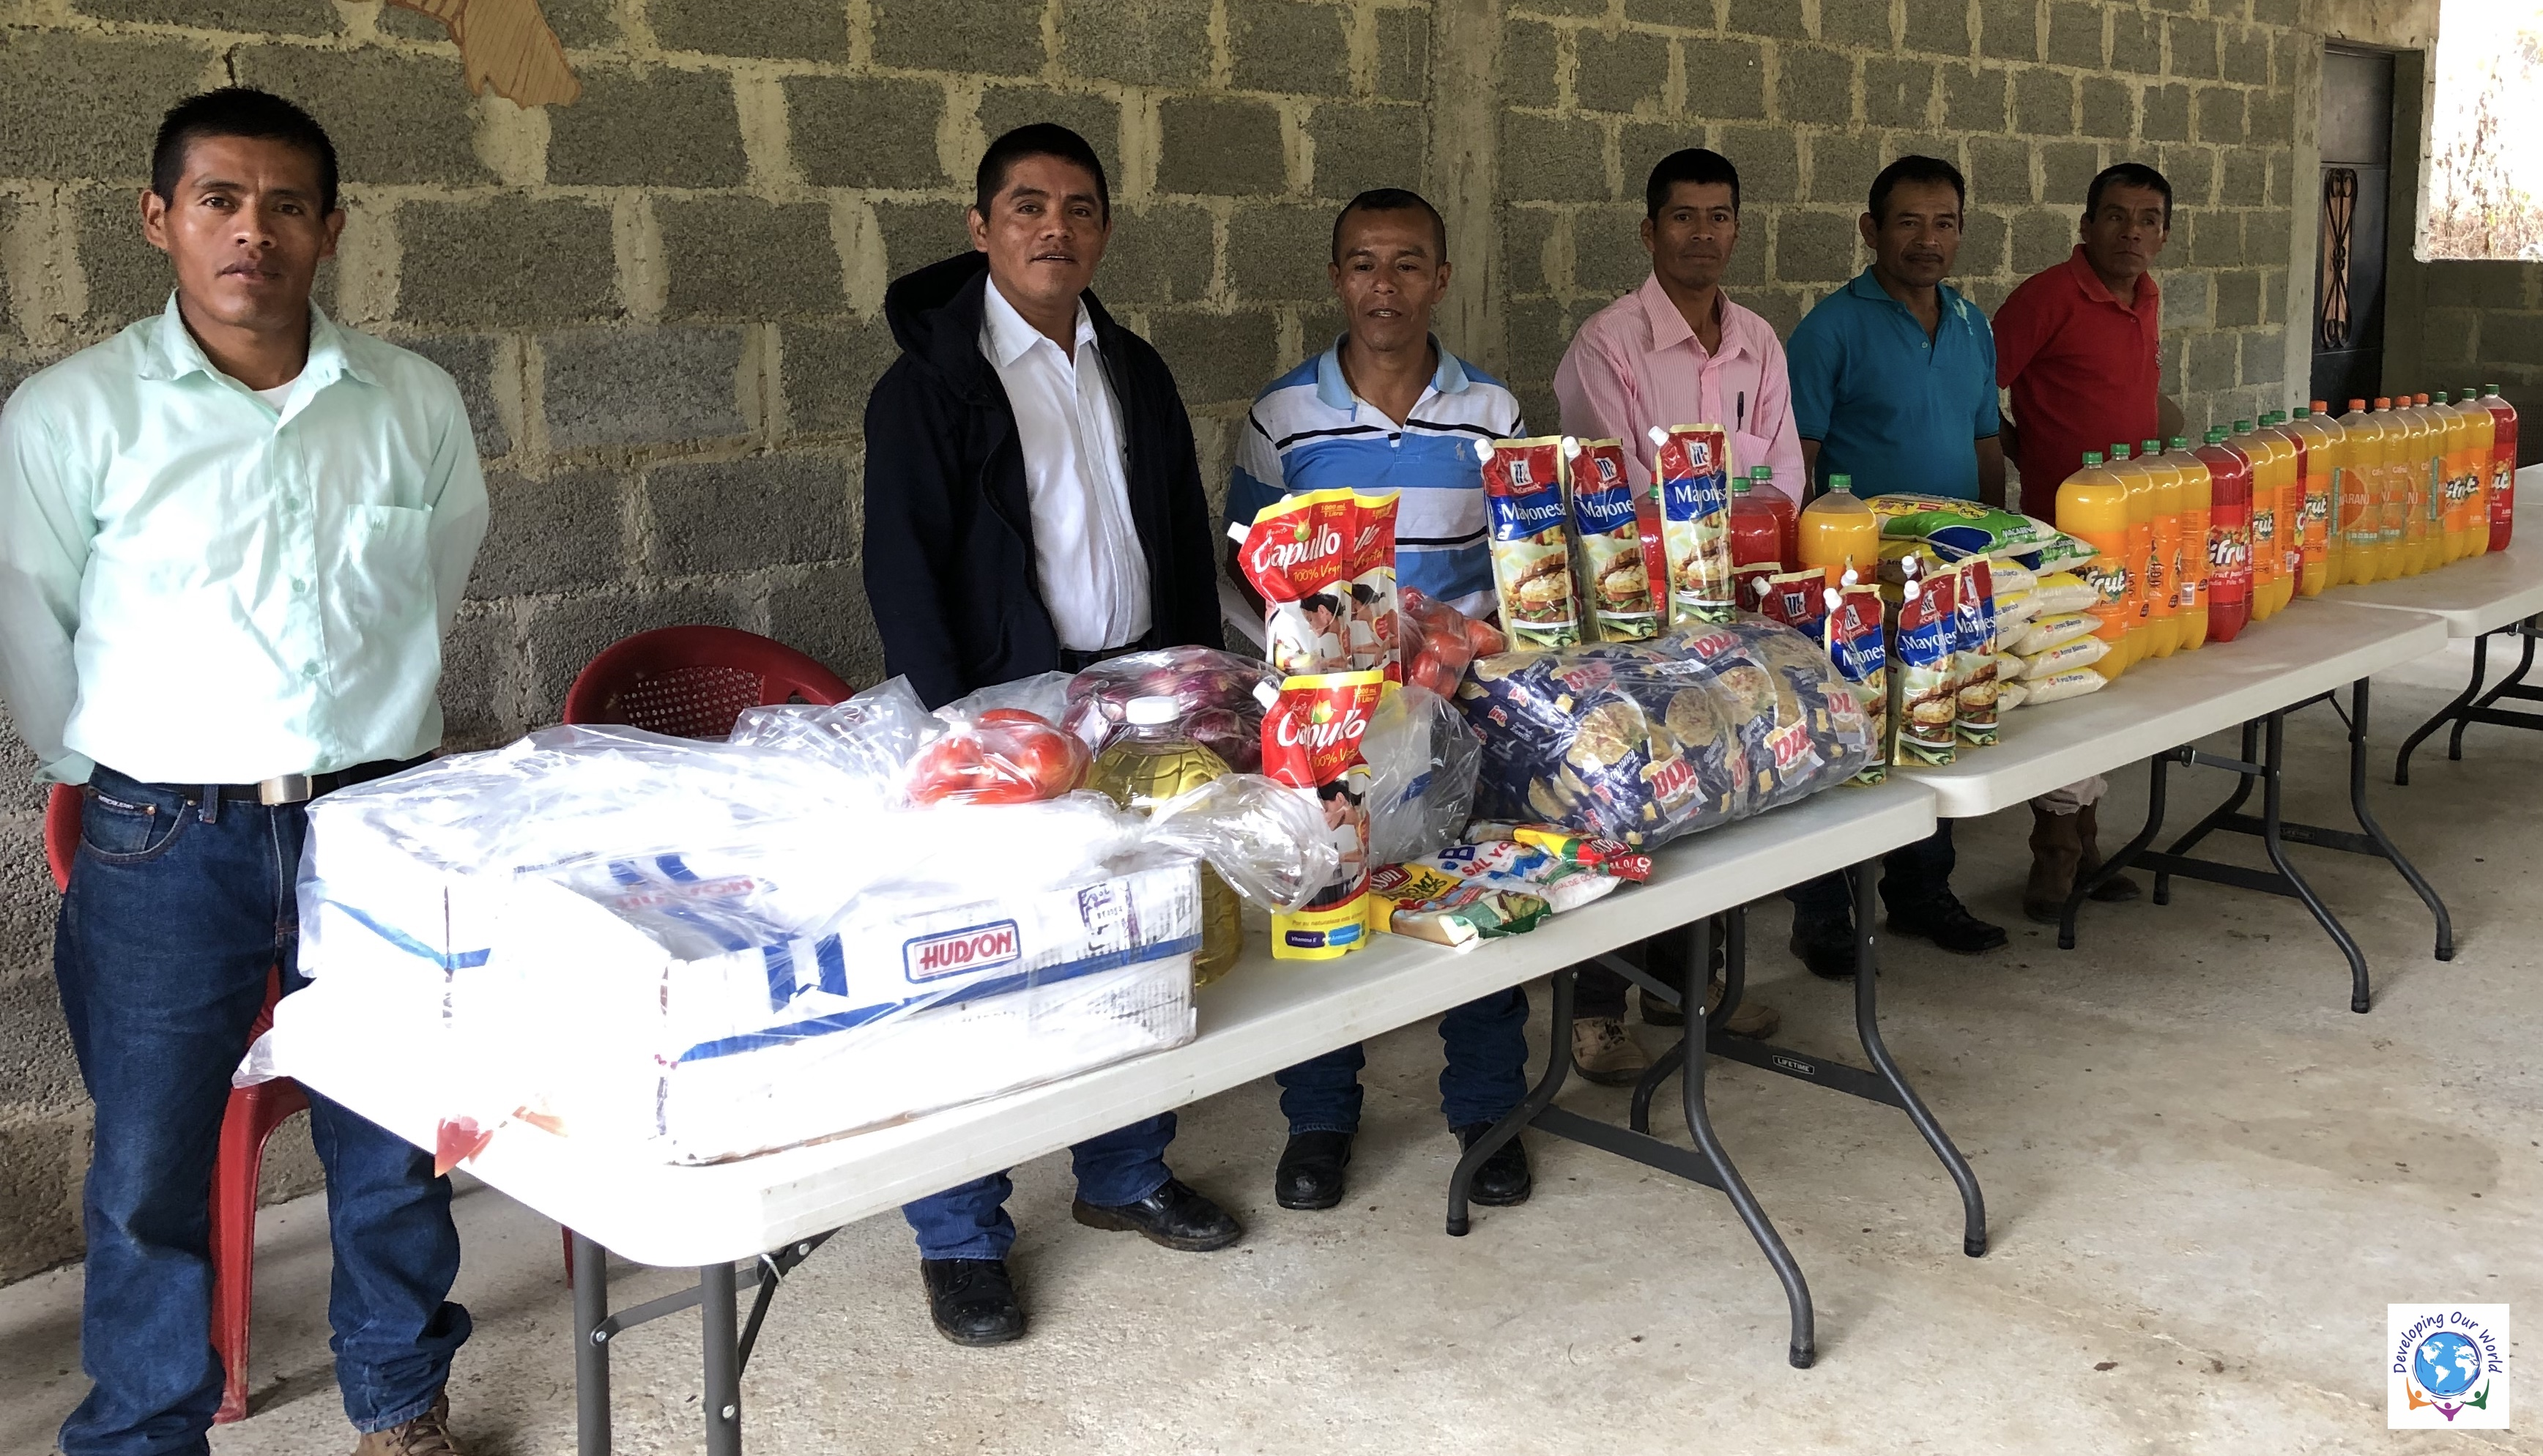 Community leaders with the food donated